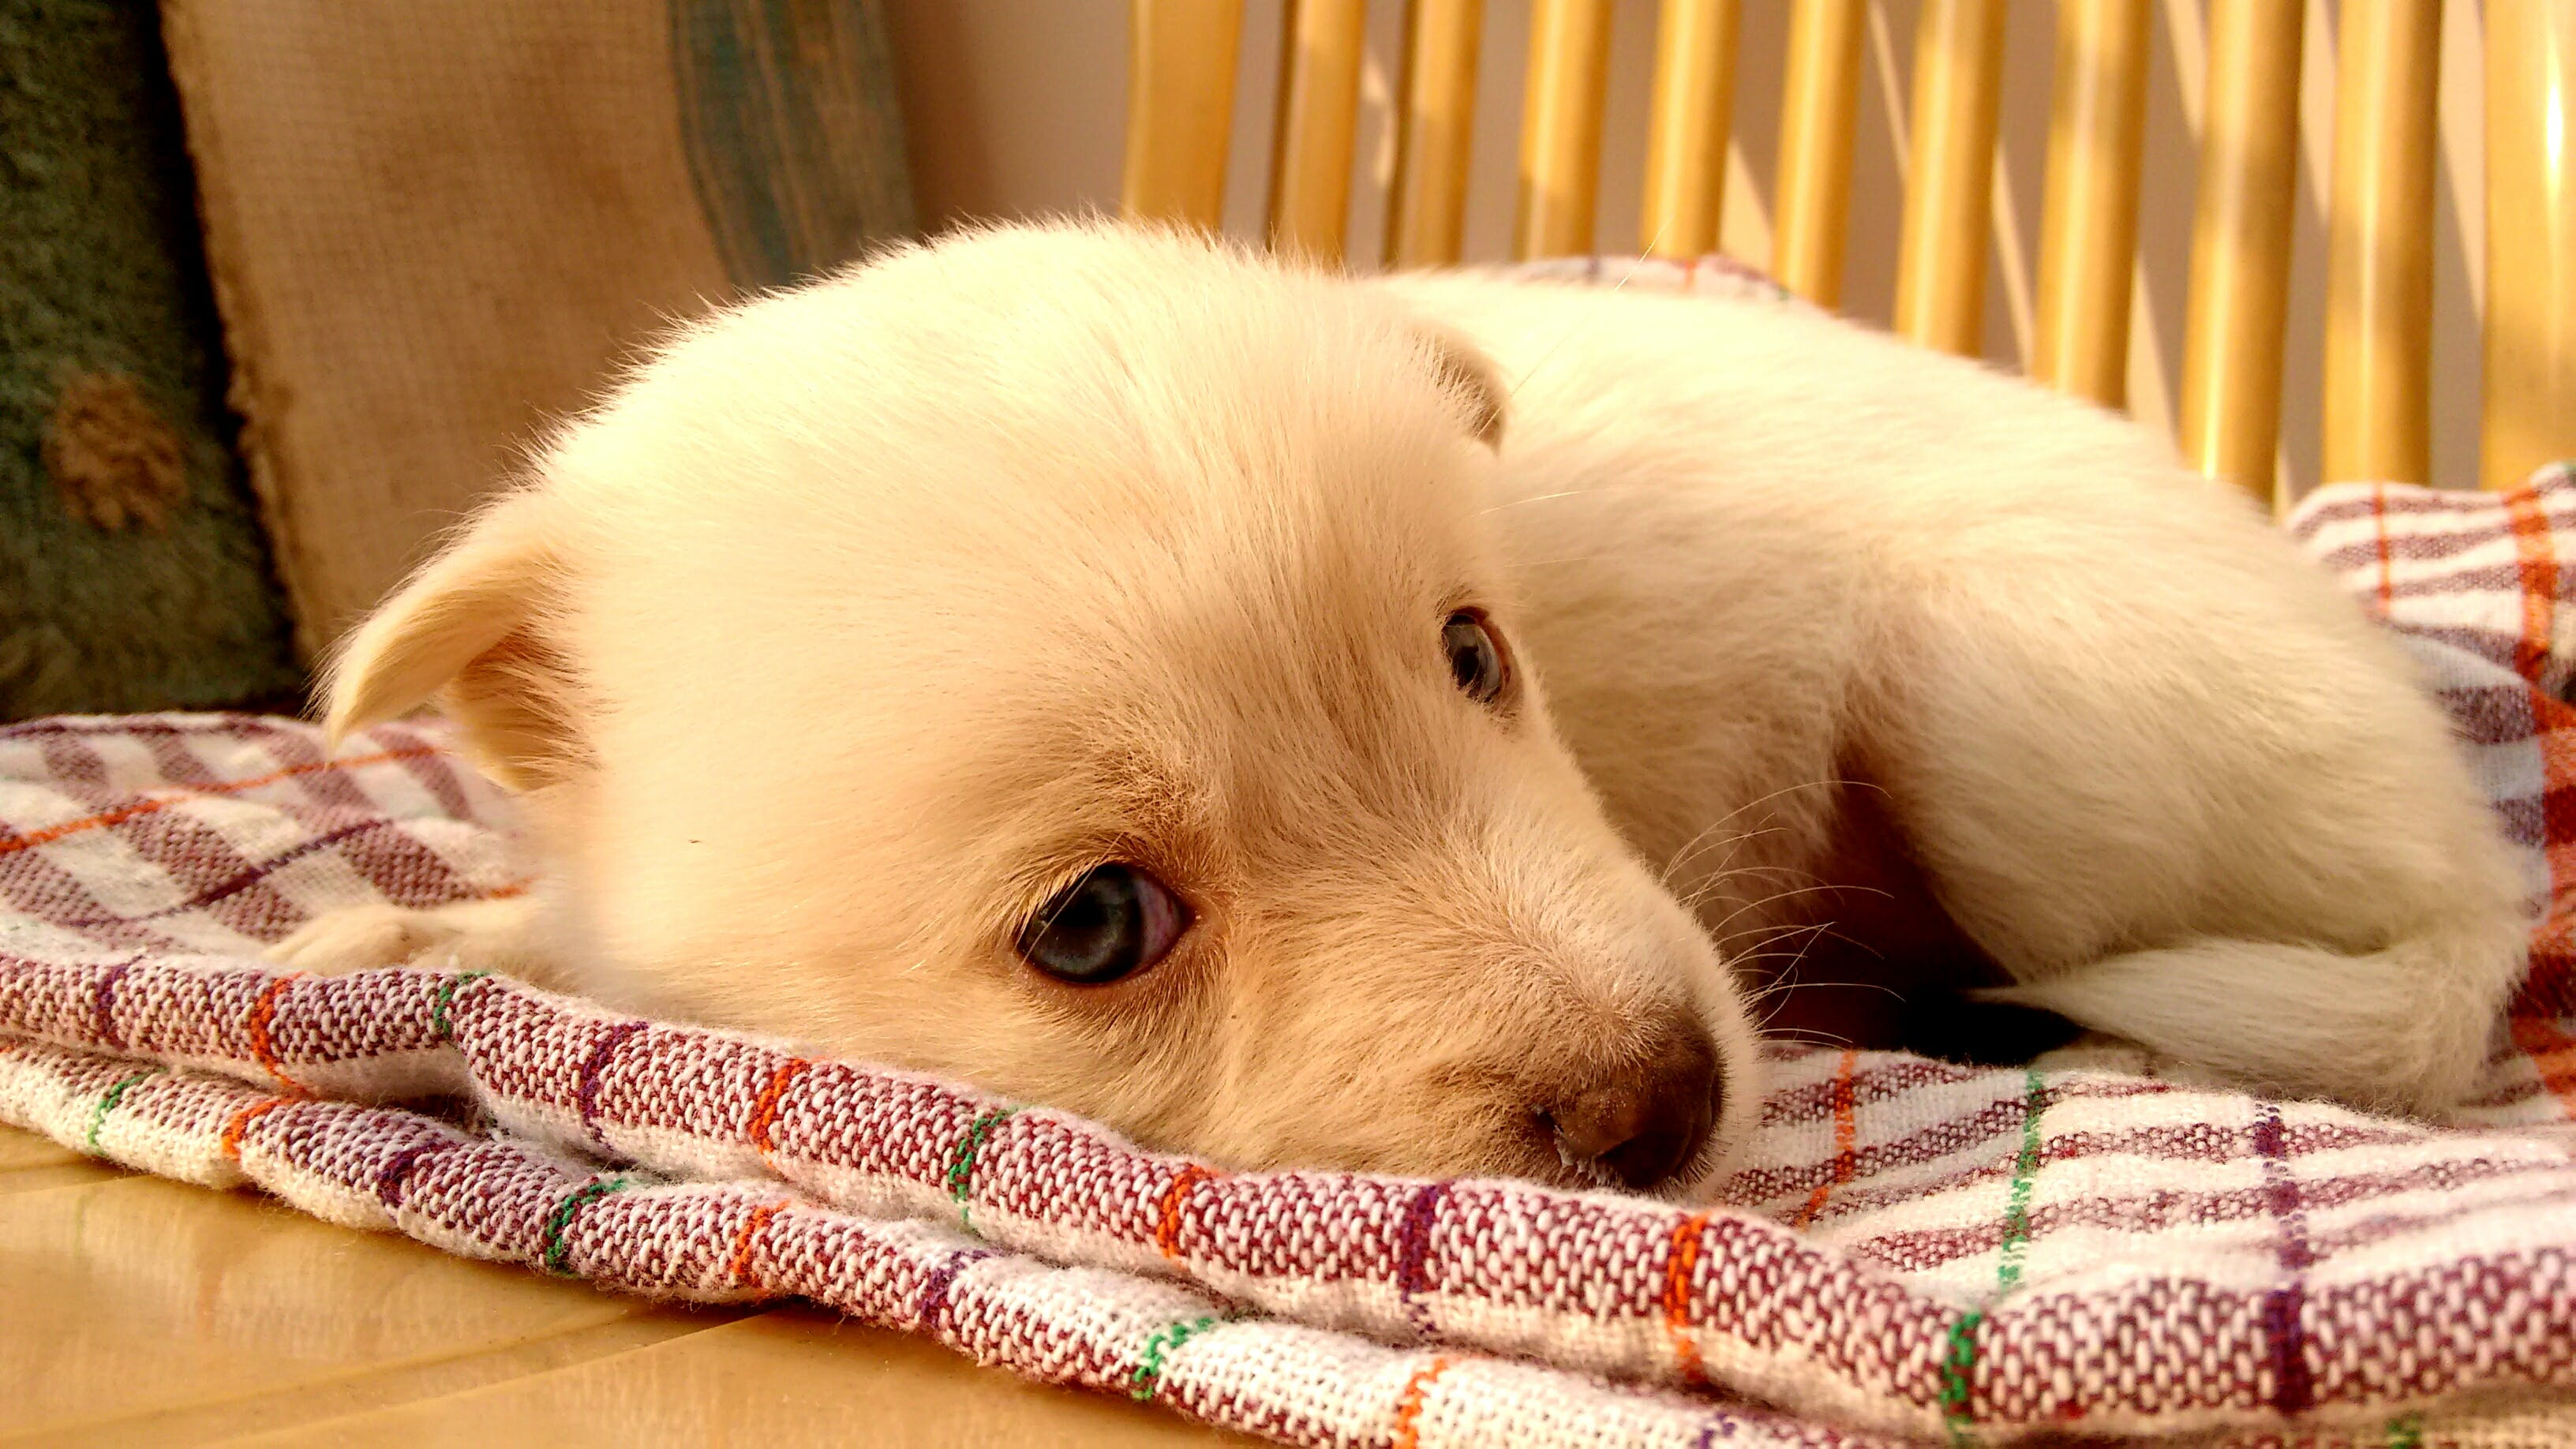 Puppy Lying on Plaid Textile